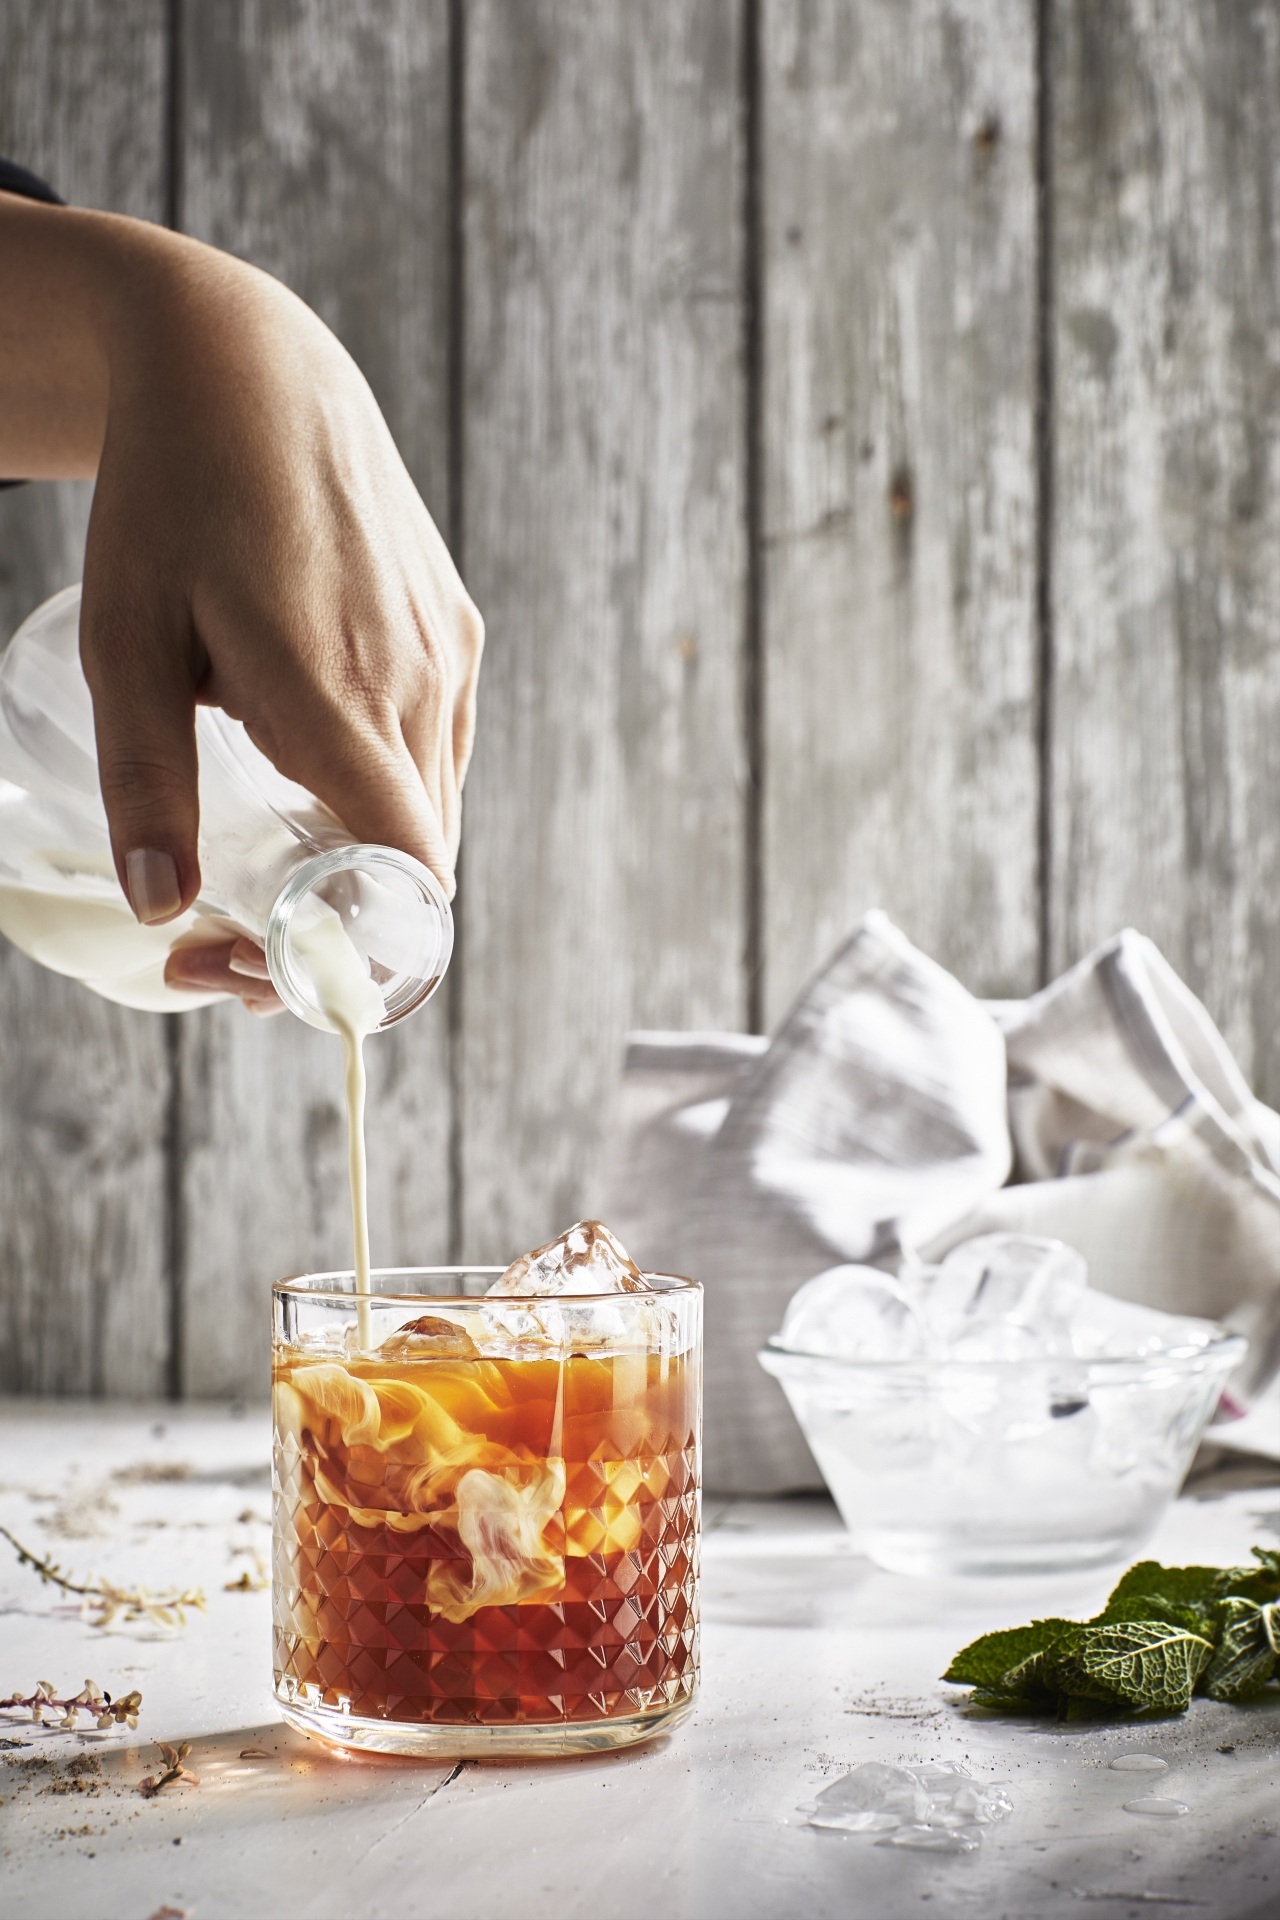 A hand pouring milk into a glass of iced tea, with a bowl of ice and a tea towel in the background.